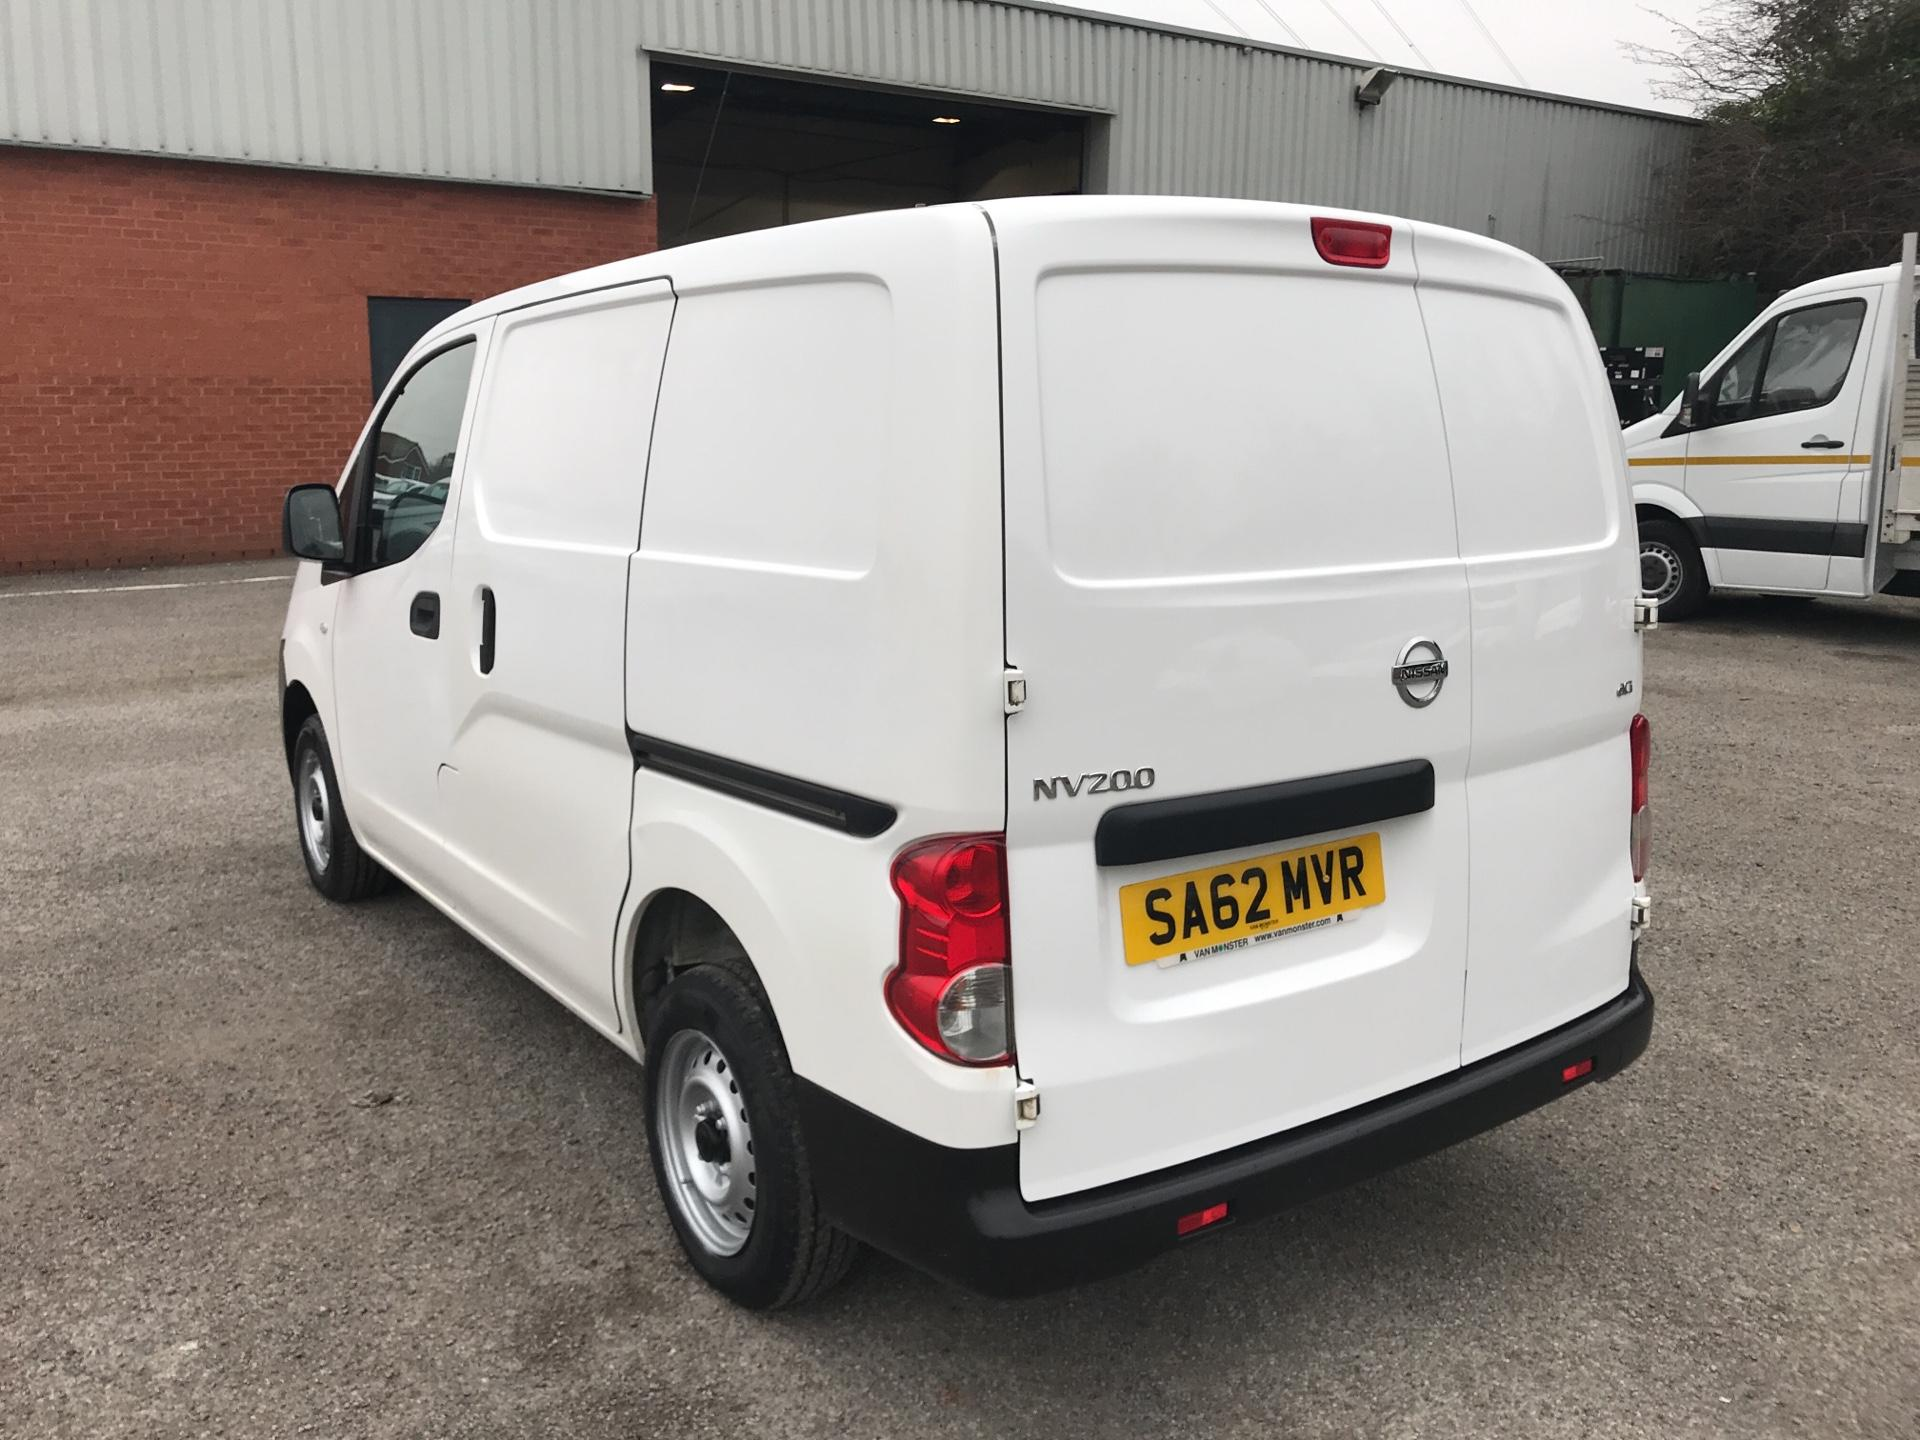 2012 Nissan Nv200 1.5 Dci 89 Se Van EURO 5 -*VALUE RANGE VEHICLE - CONDITION REFLECTED IN PRICE* (SA62MVR) Image 5